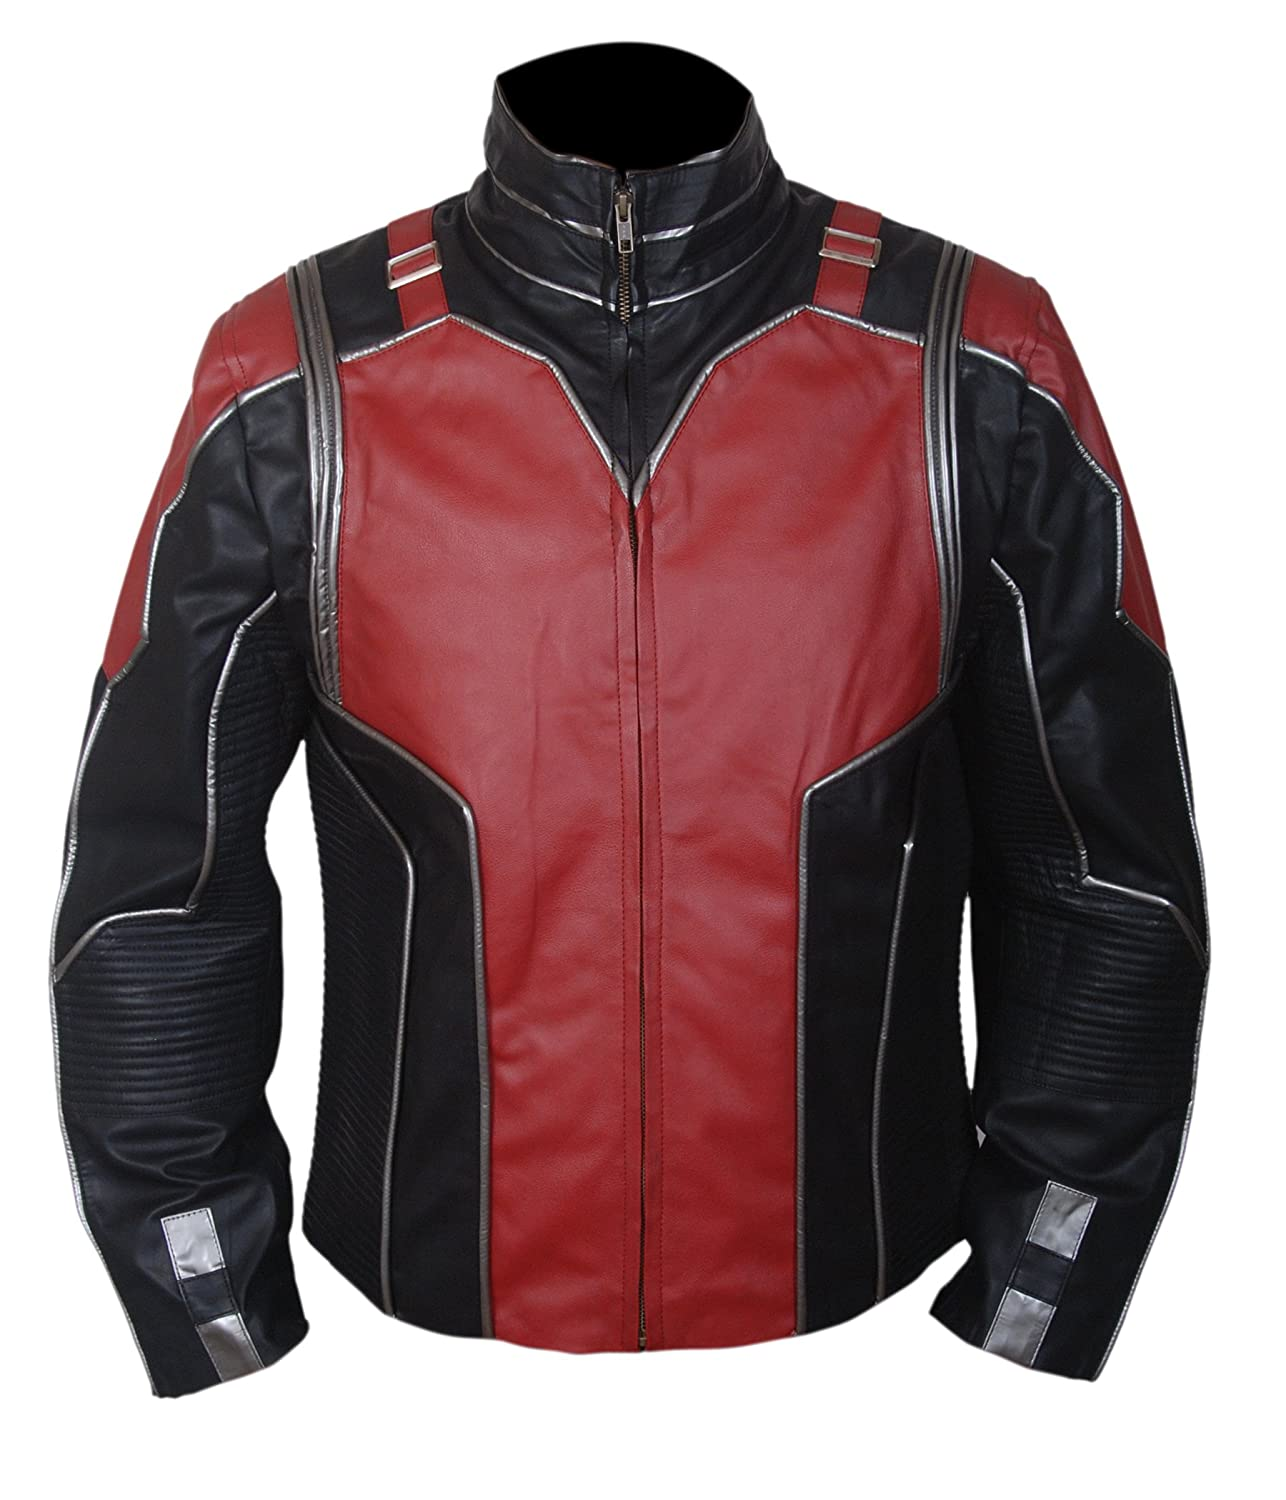 Antman (Paul Rudd) Red and Black Faux Leather Jacket